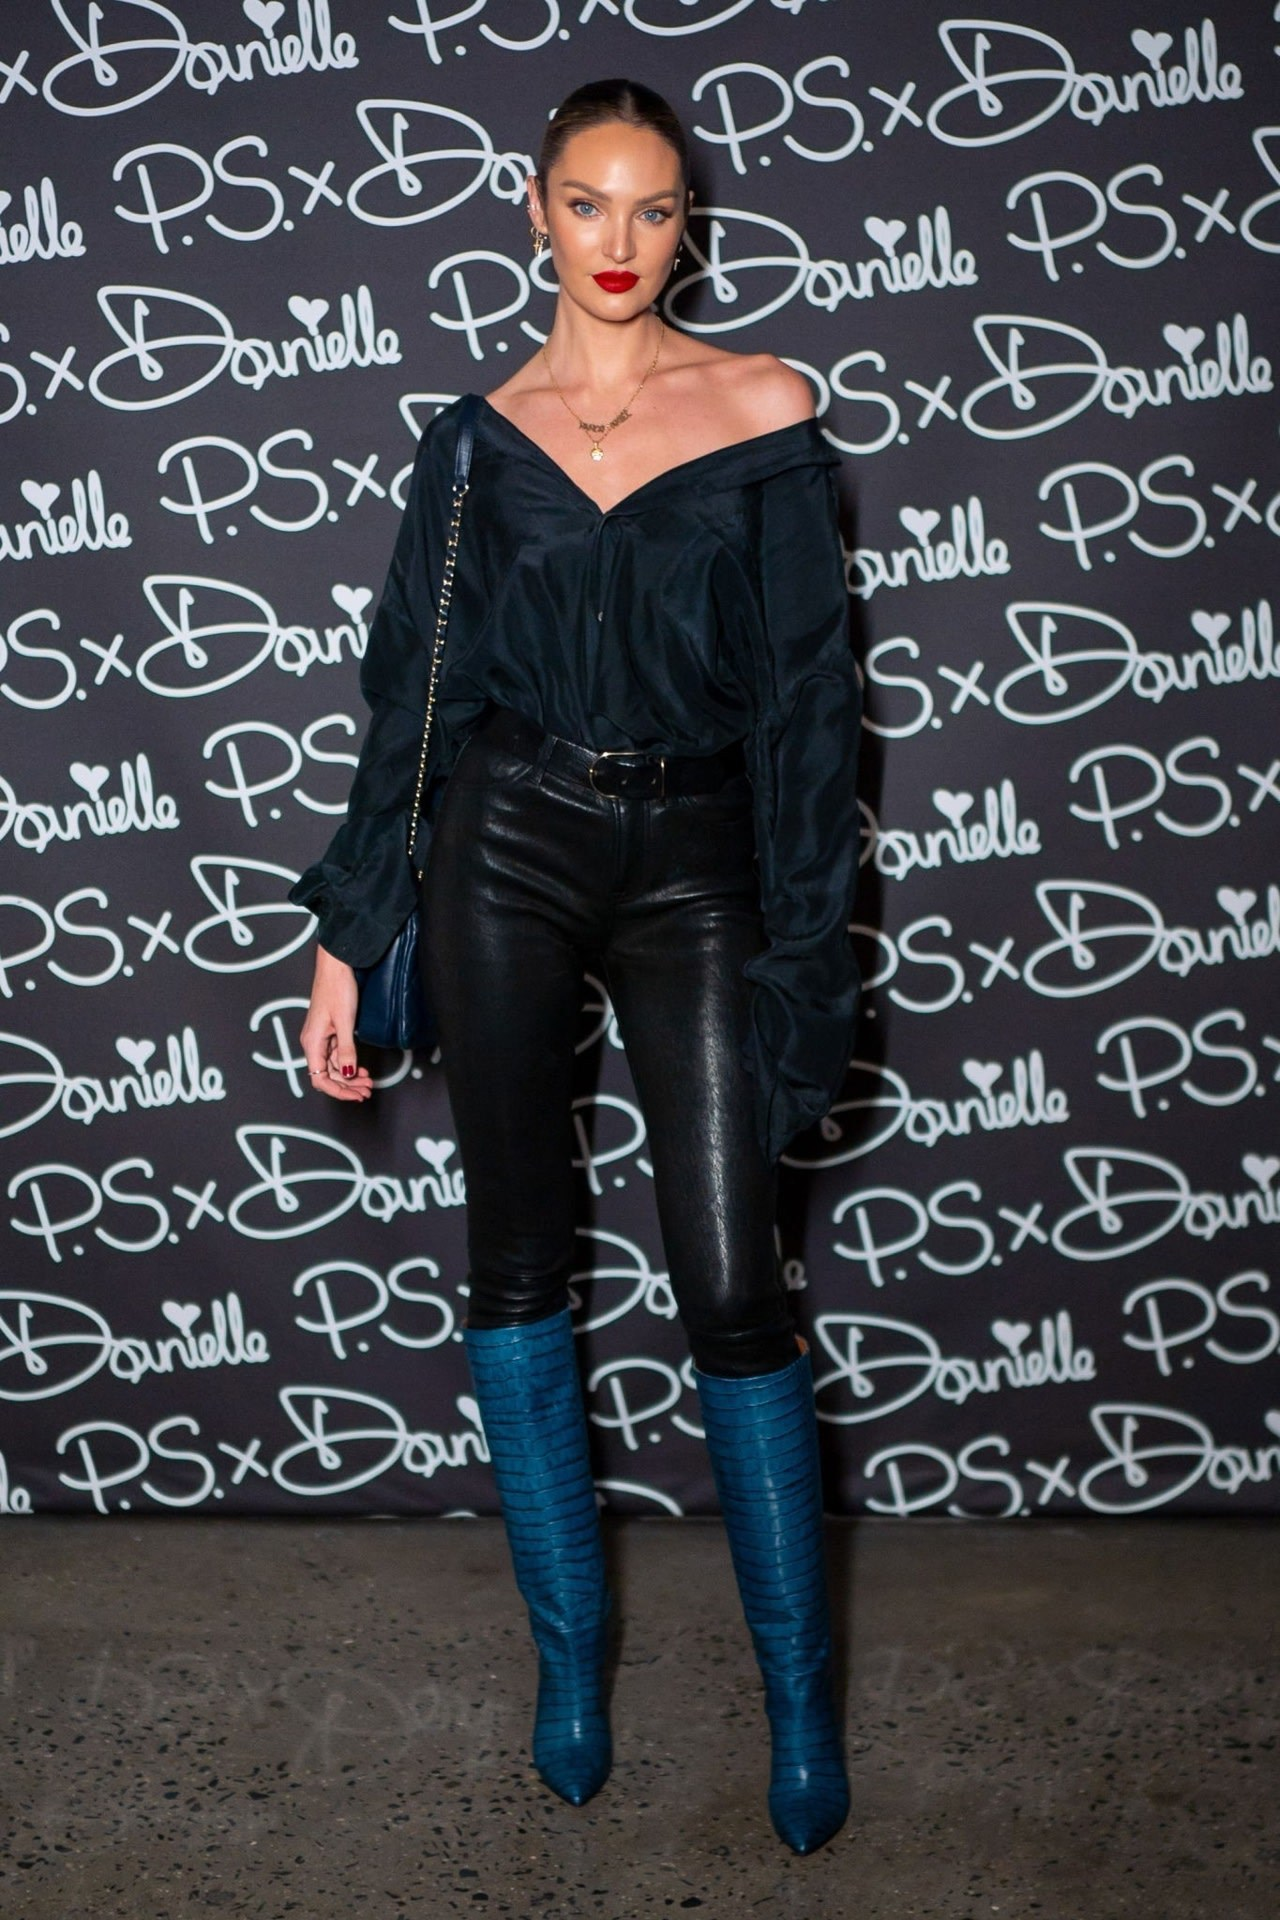 shoes black pants top boots candice swanepoel model off-duty